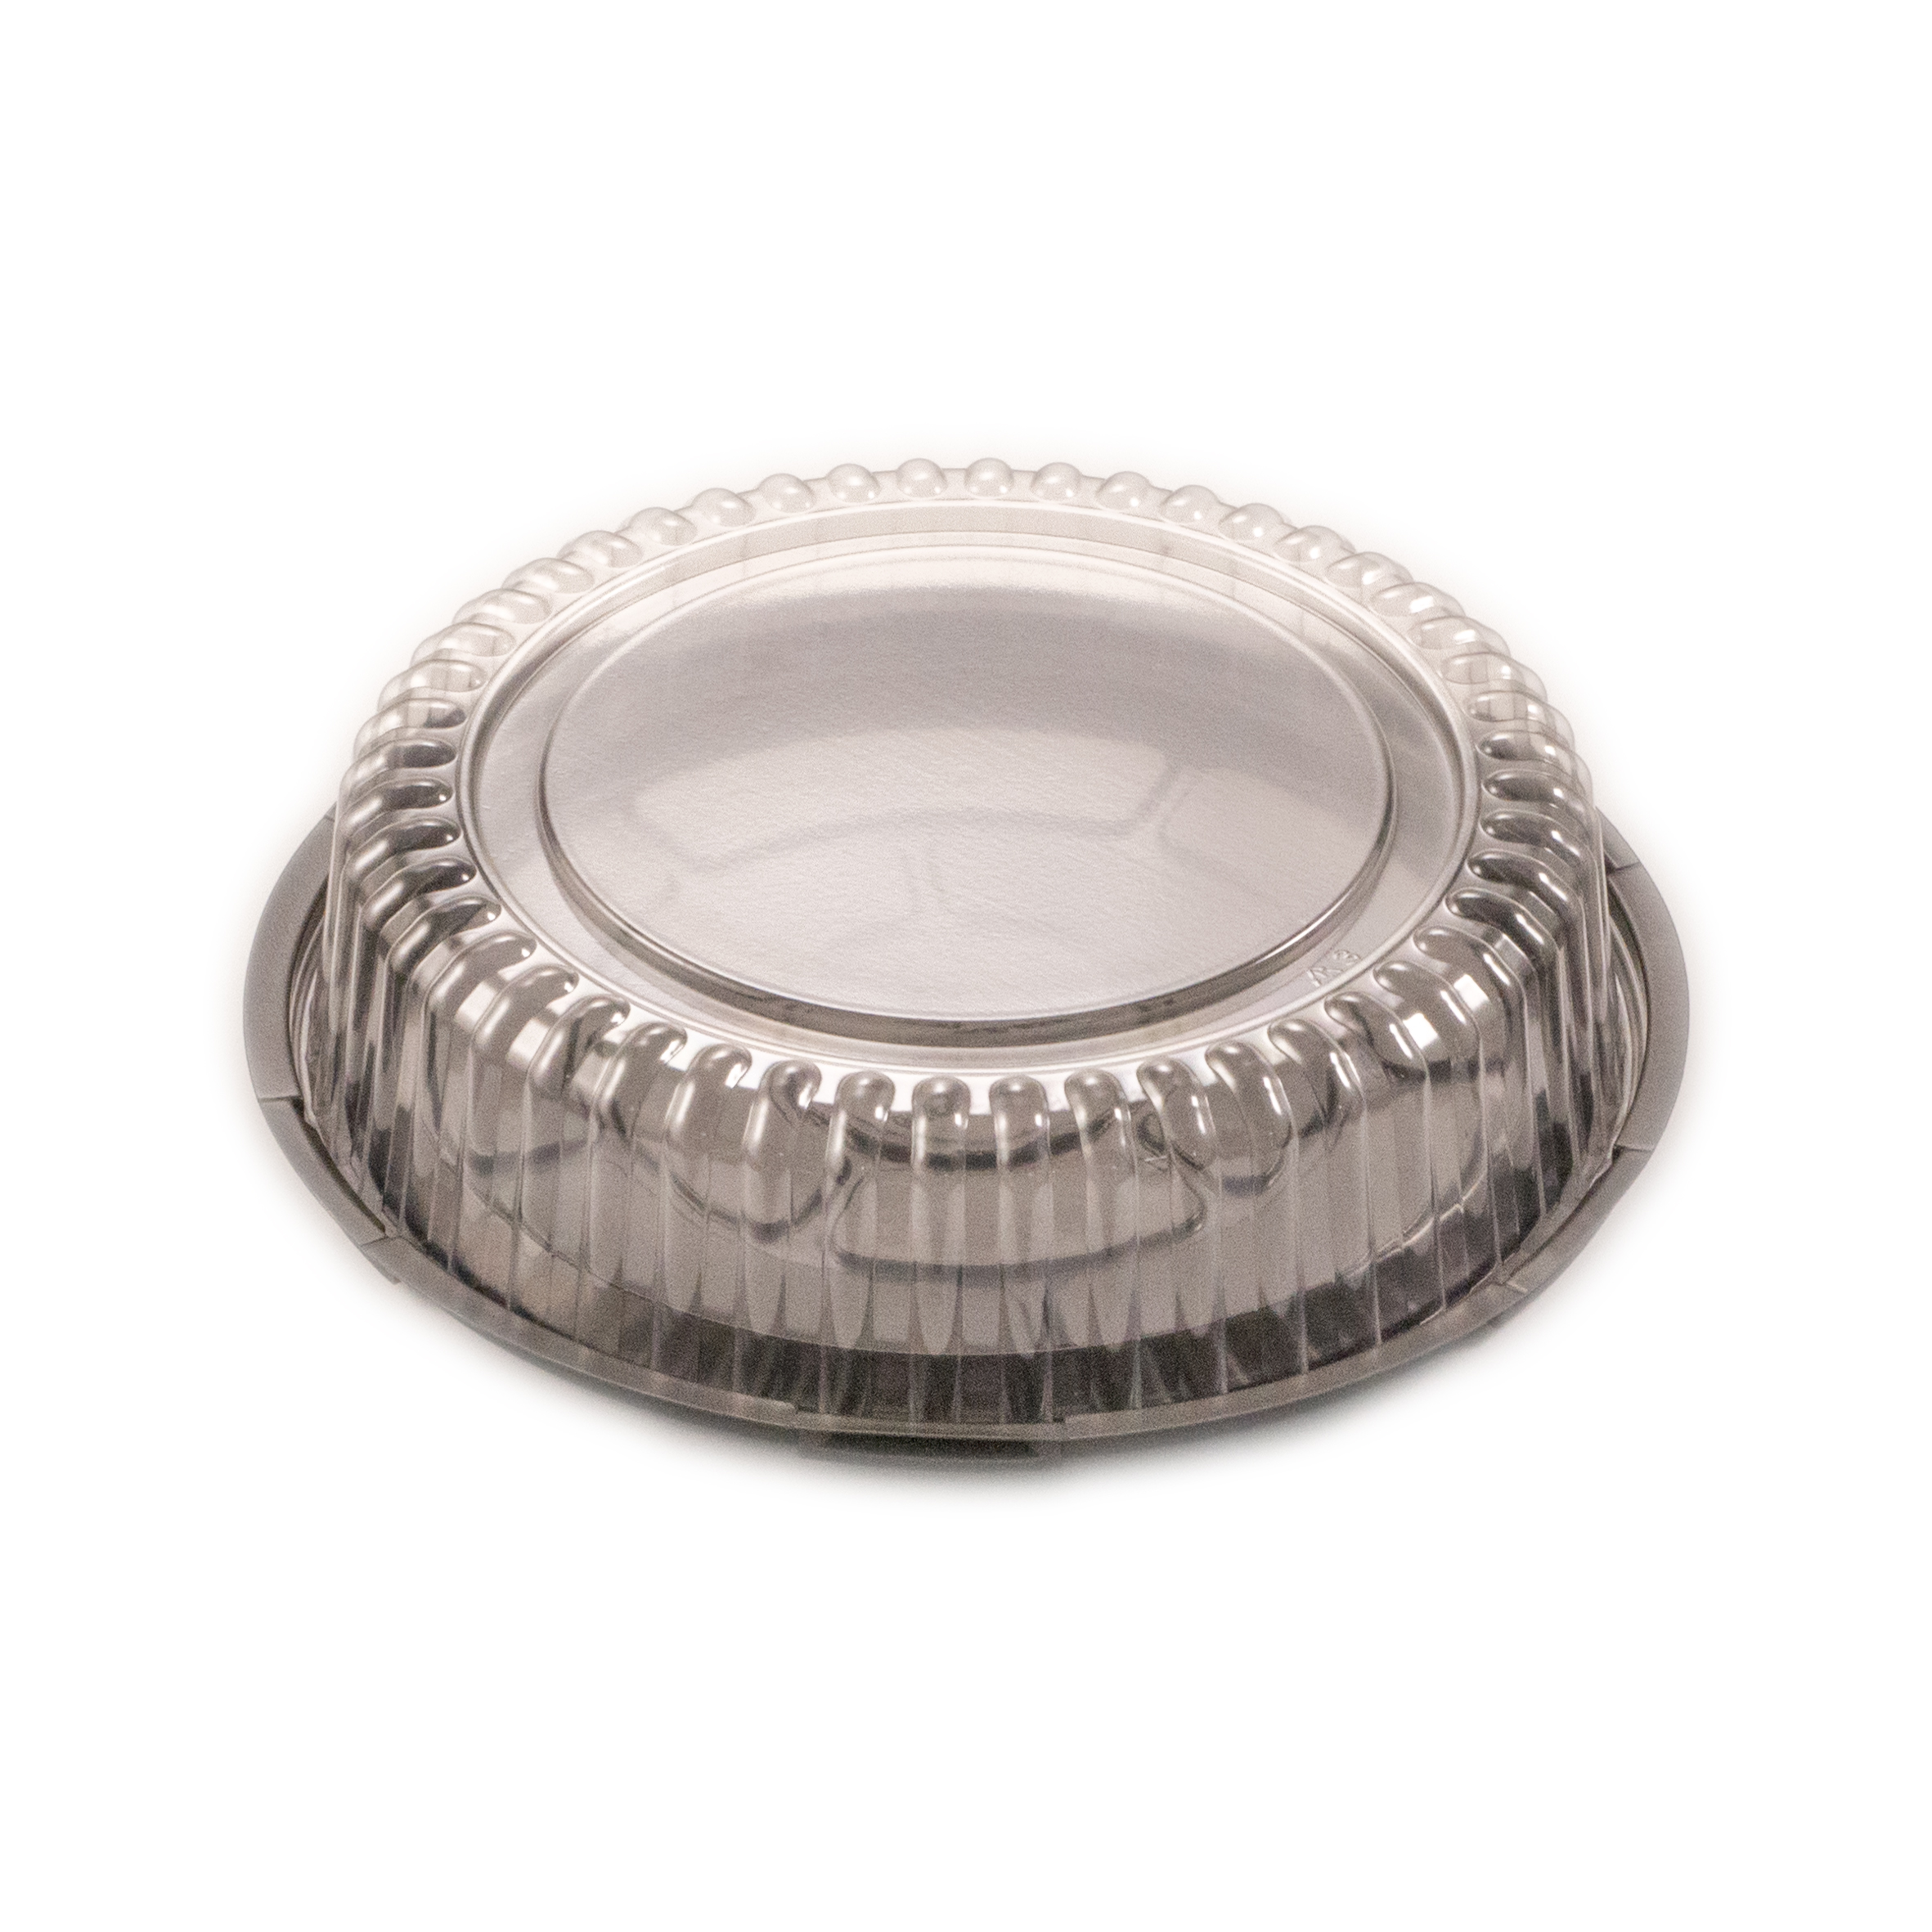 iK-CAKE-SML      CLEAR CAKE DOME AND BLACK BASE SMALL    216x50mm 50 per sleeve 100 per carto